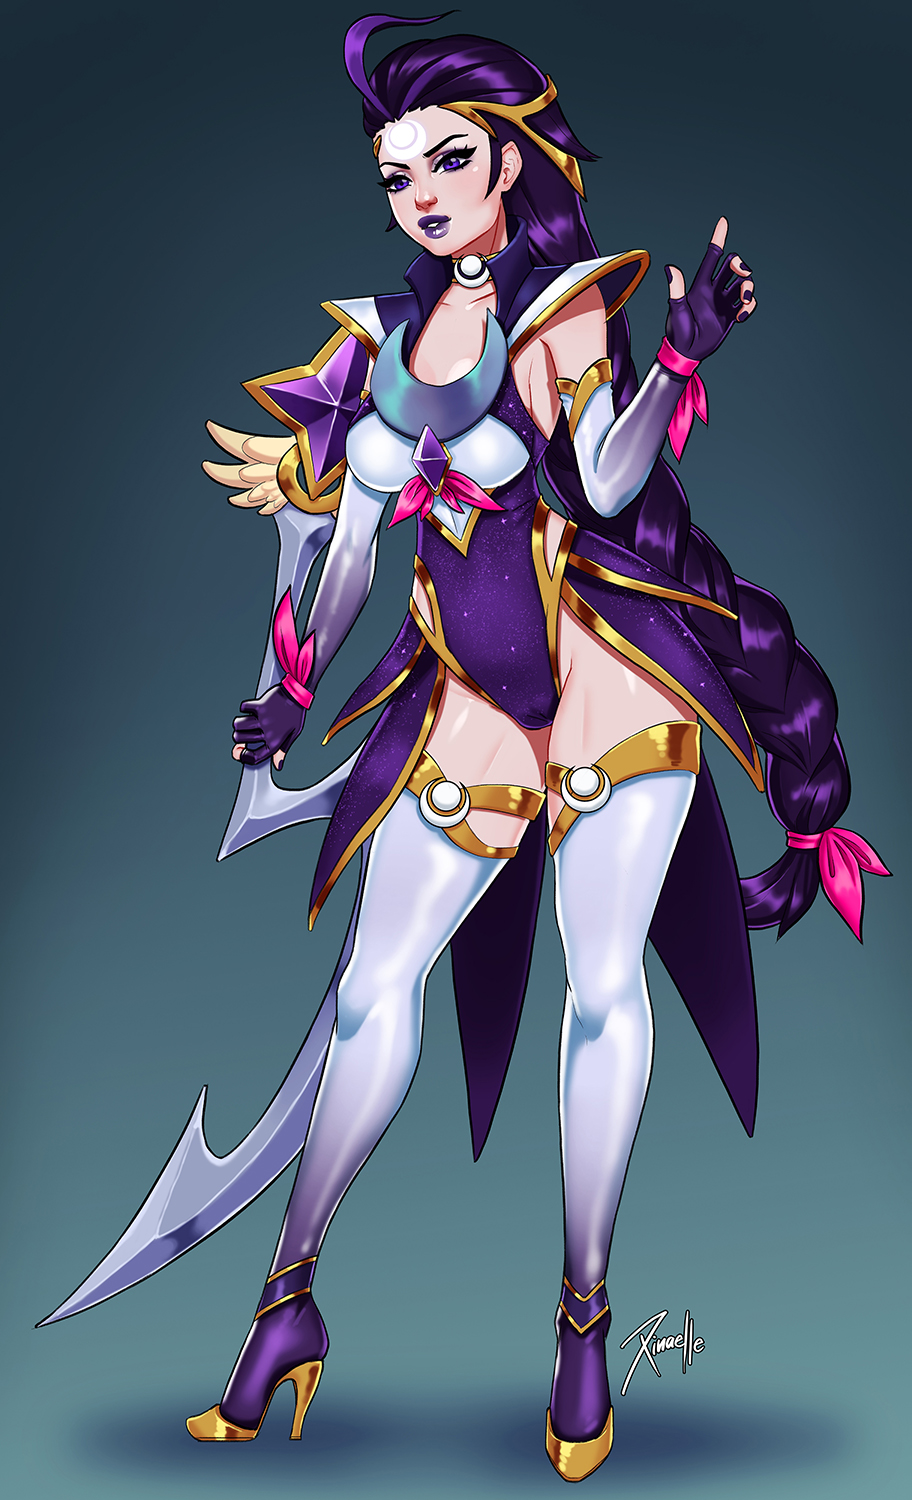 Star Guardian Diana by Xinaelle on DeviantArt